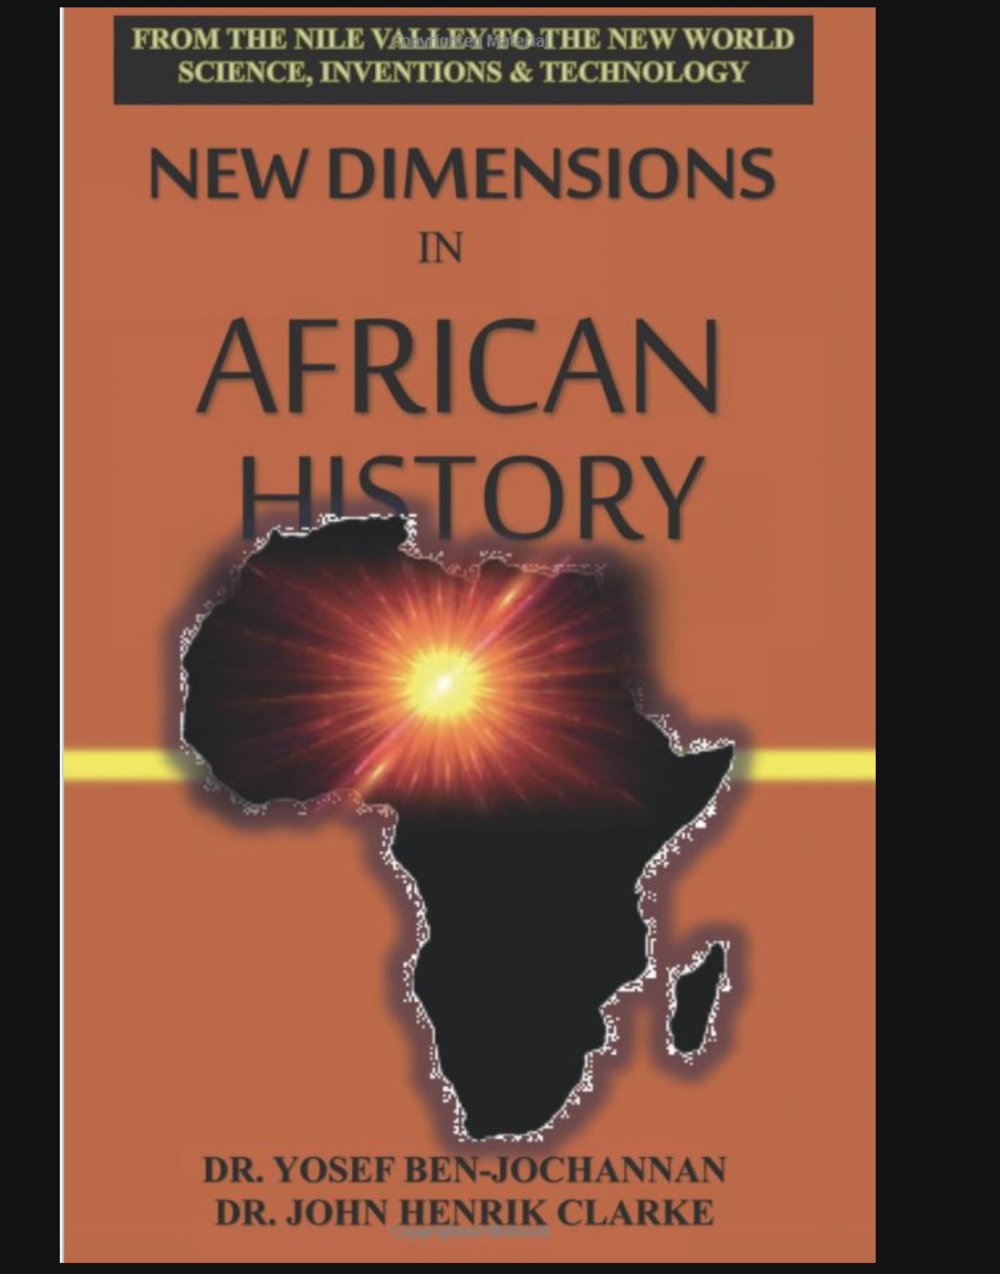 New Dimensions in African History